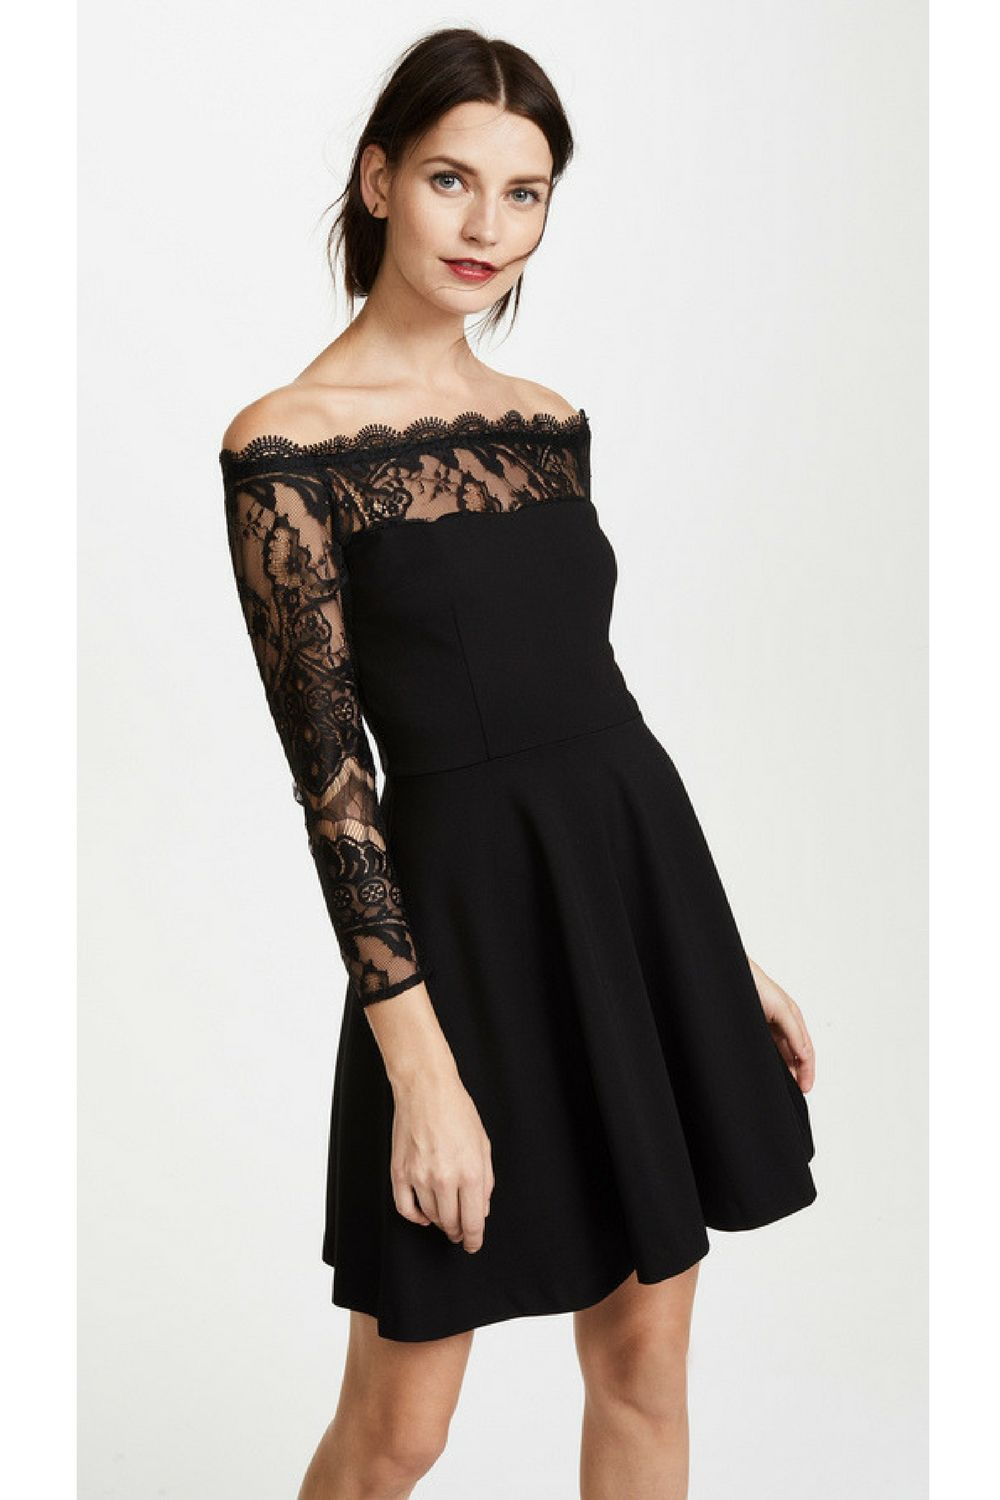 74d32d429efaa $110 BB Dakota Dennett Lace Off the Shoulder Dress This fit-and-flare BB  Dakota dress has an alluring off-shoulder neckline trimmed with scalloped  lace.